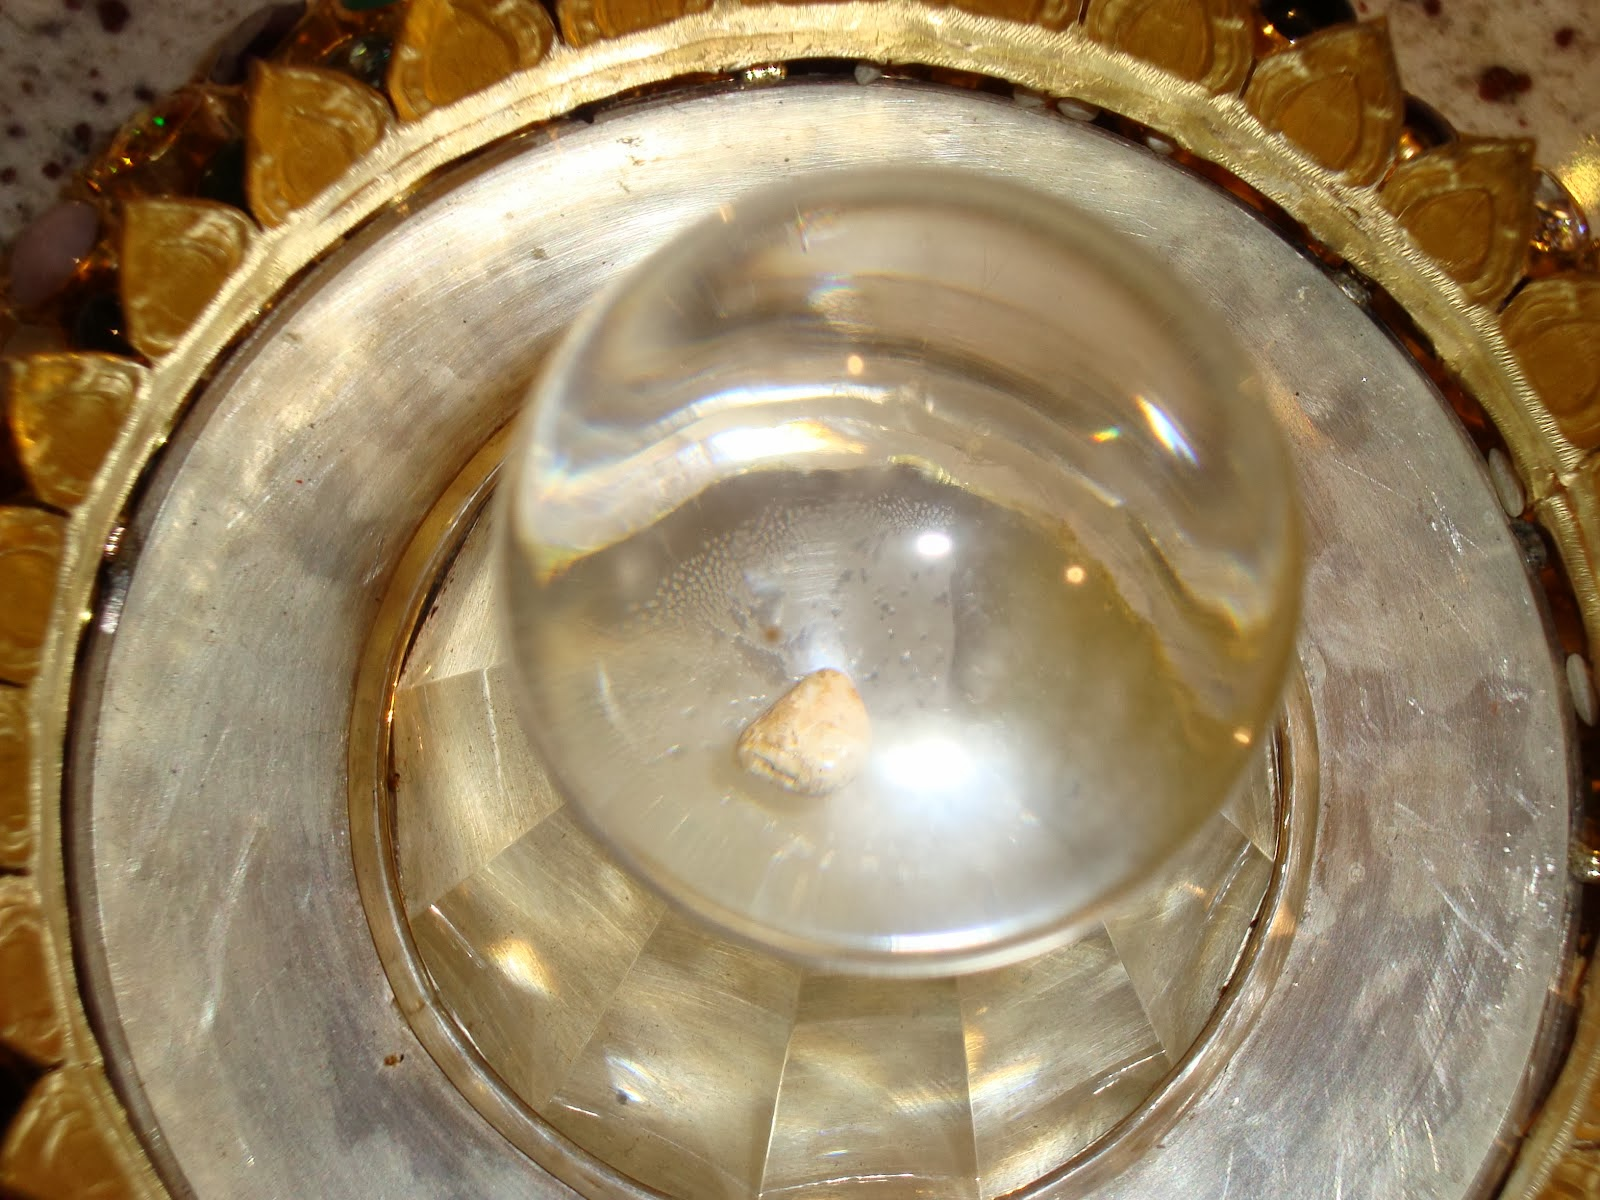 What Are the Pearl-Like Objects Found in Monks' Ashes After Cremation?